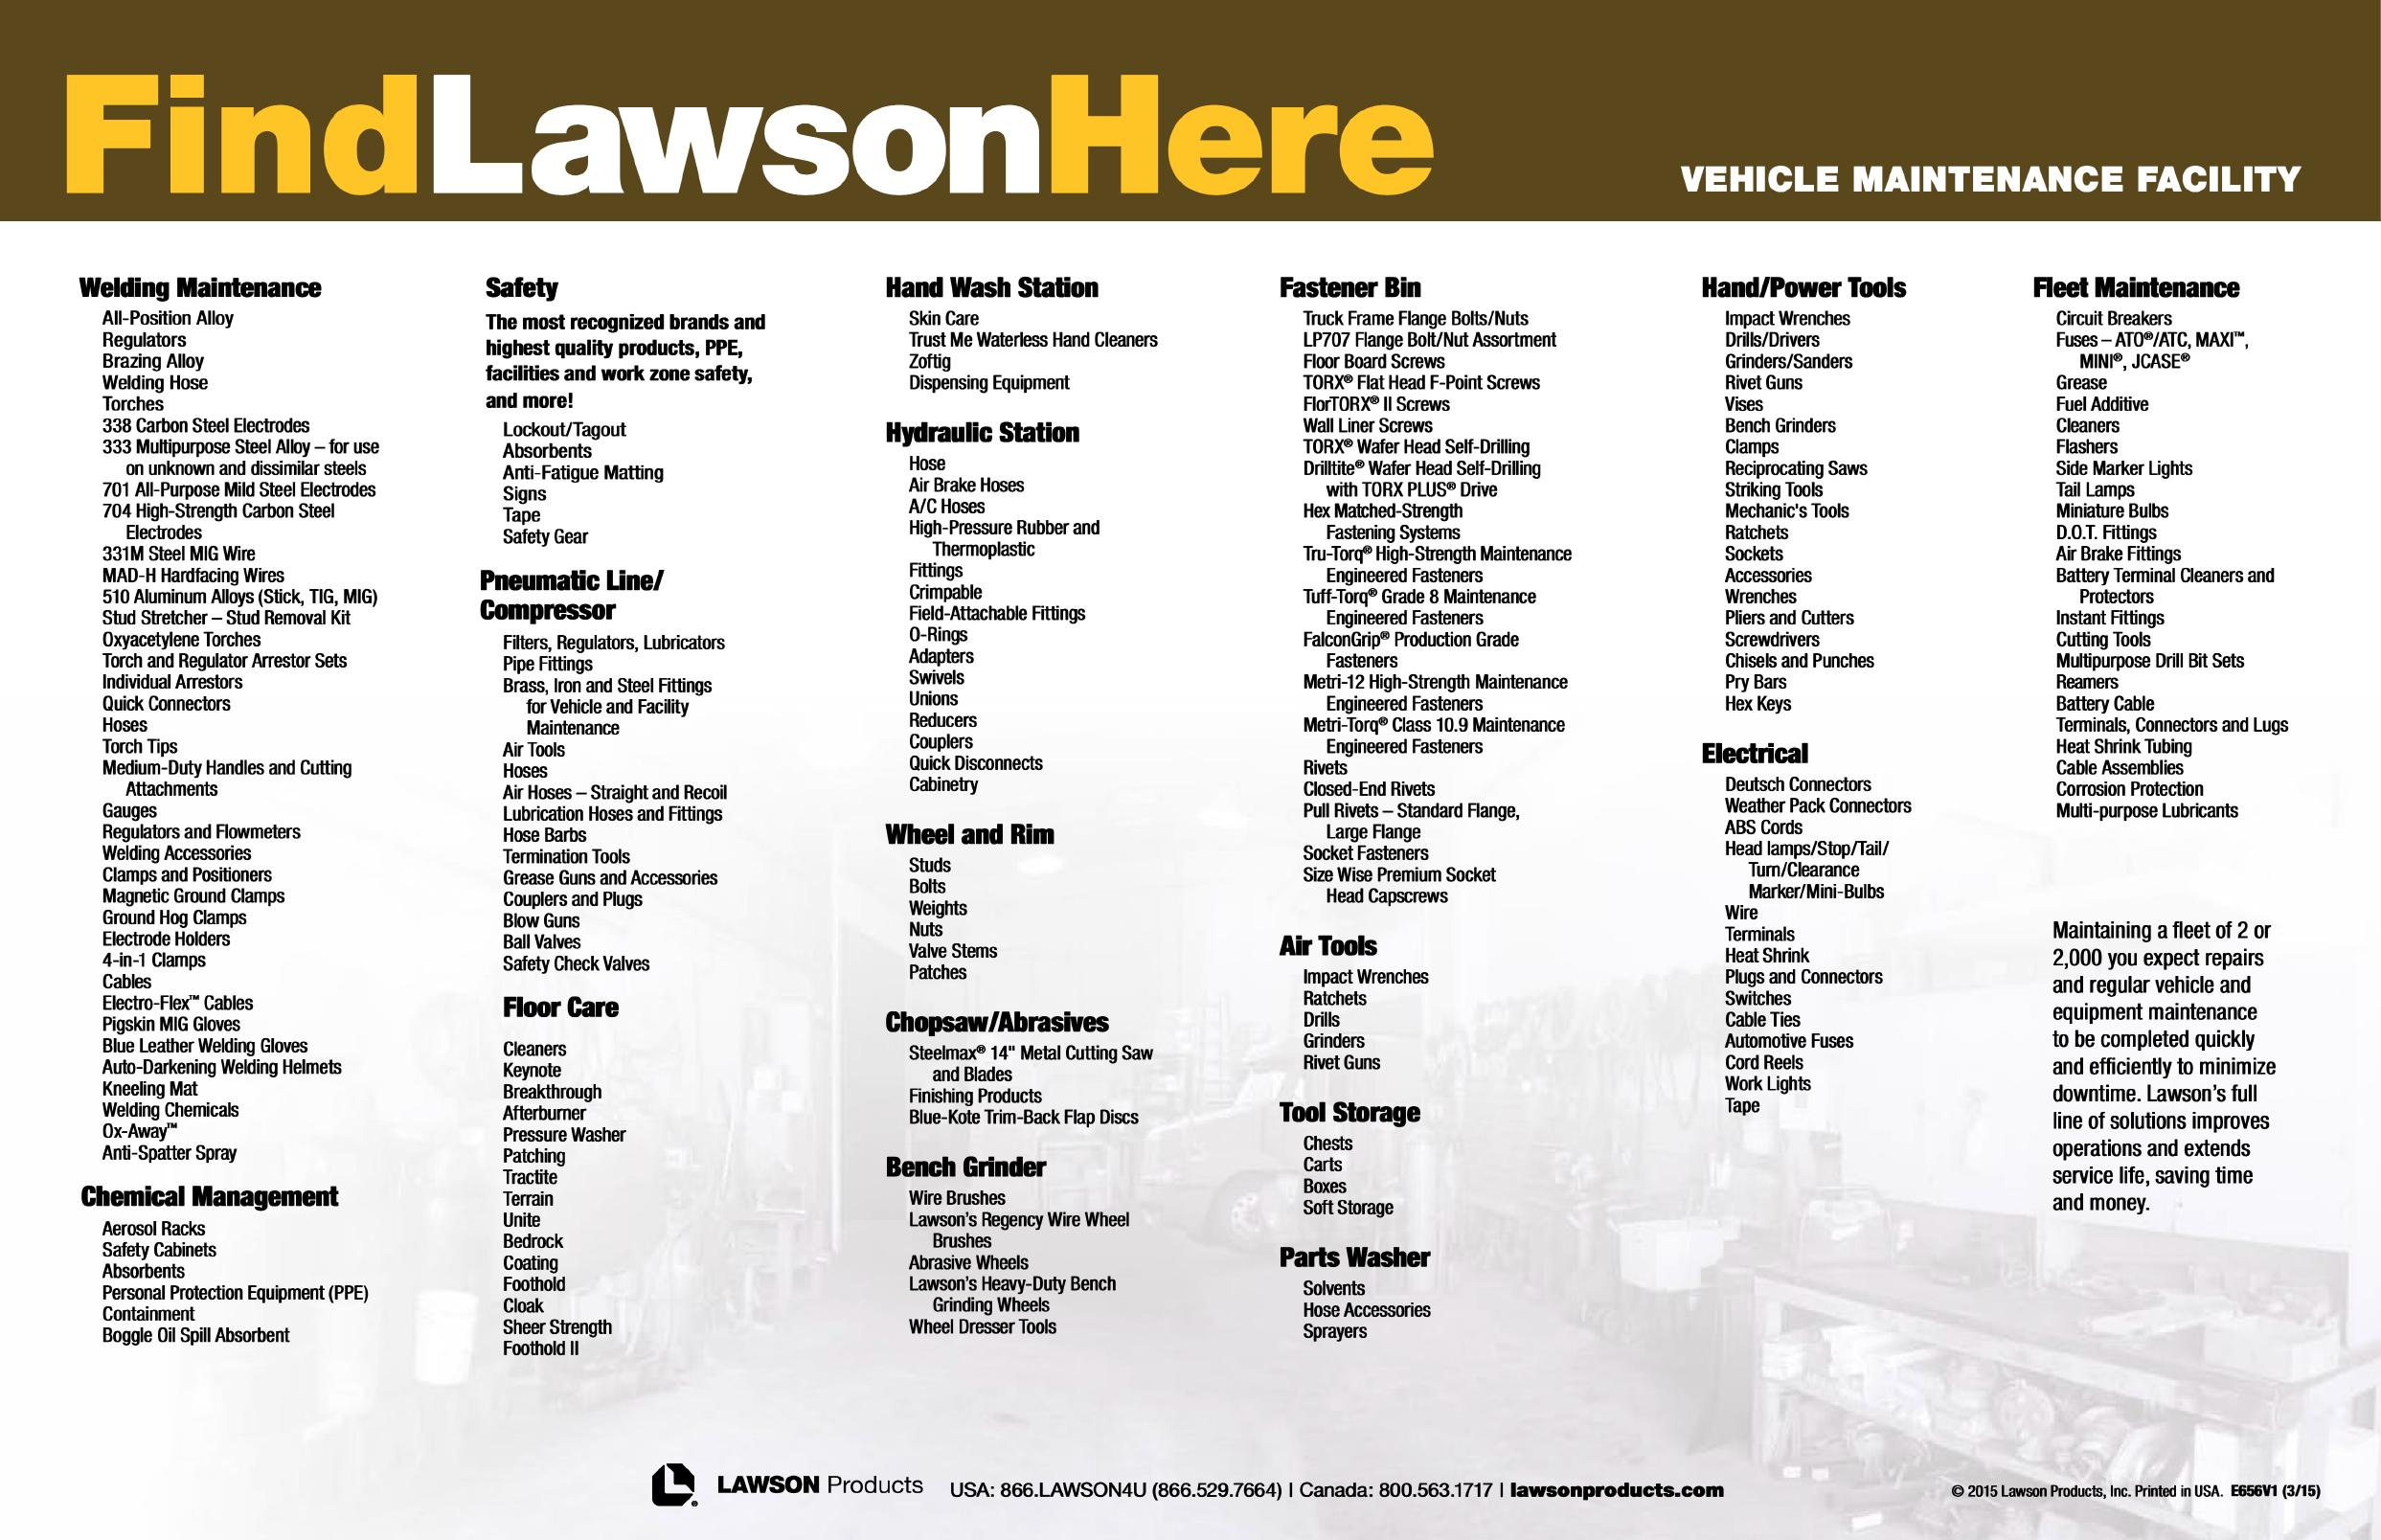 Vehicle Maintenance Facility - Find Lawson Here Page 20